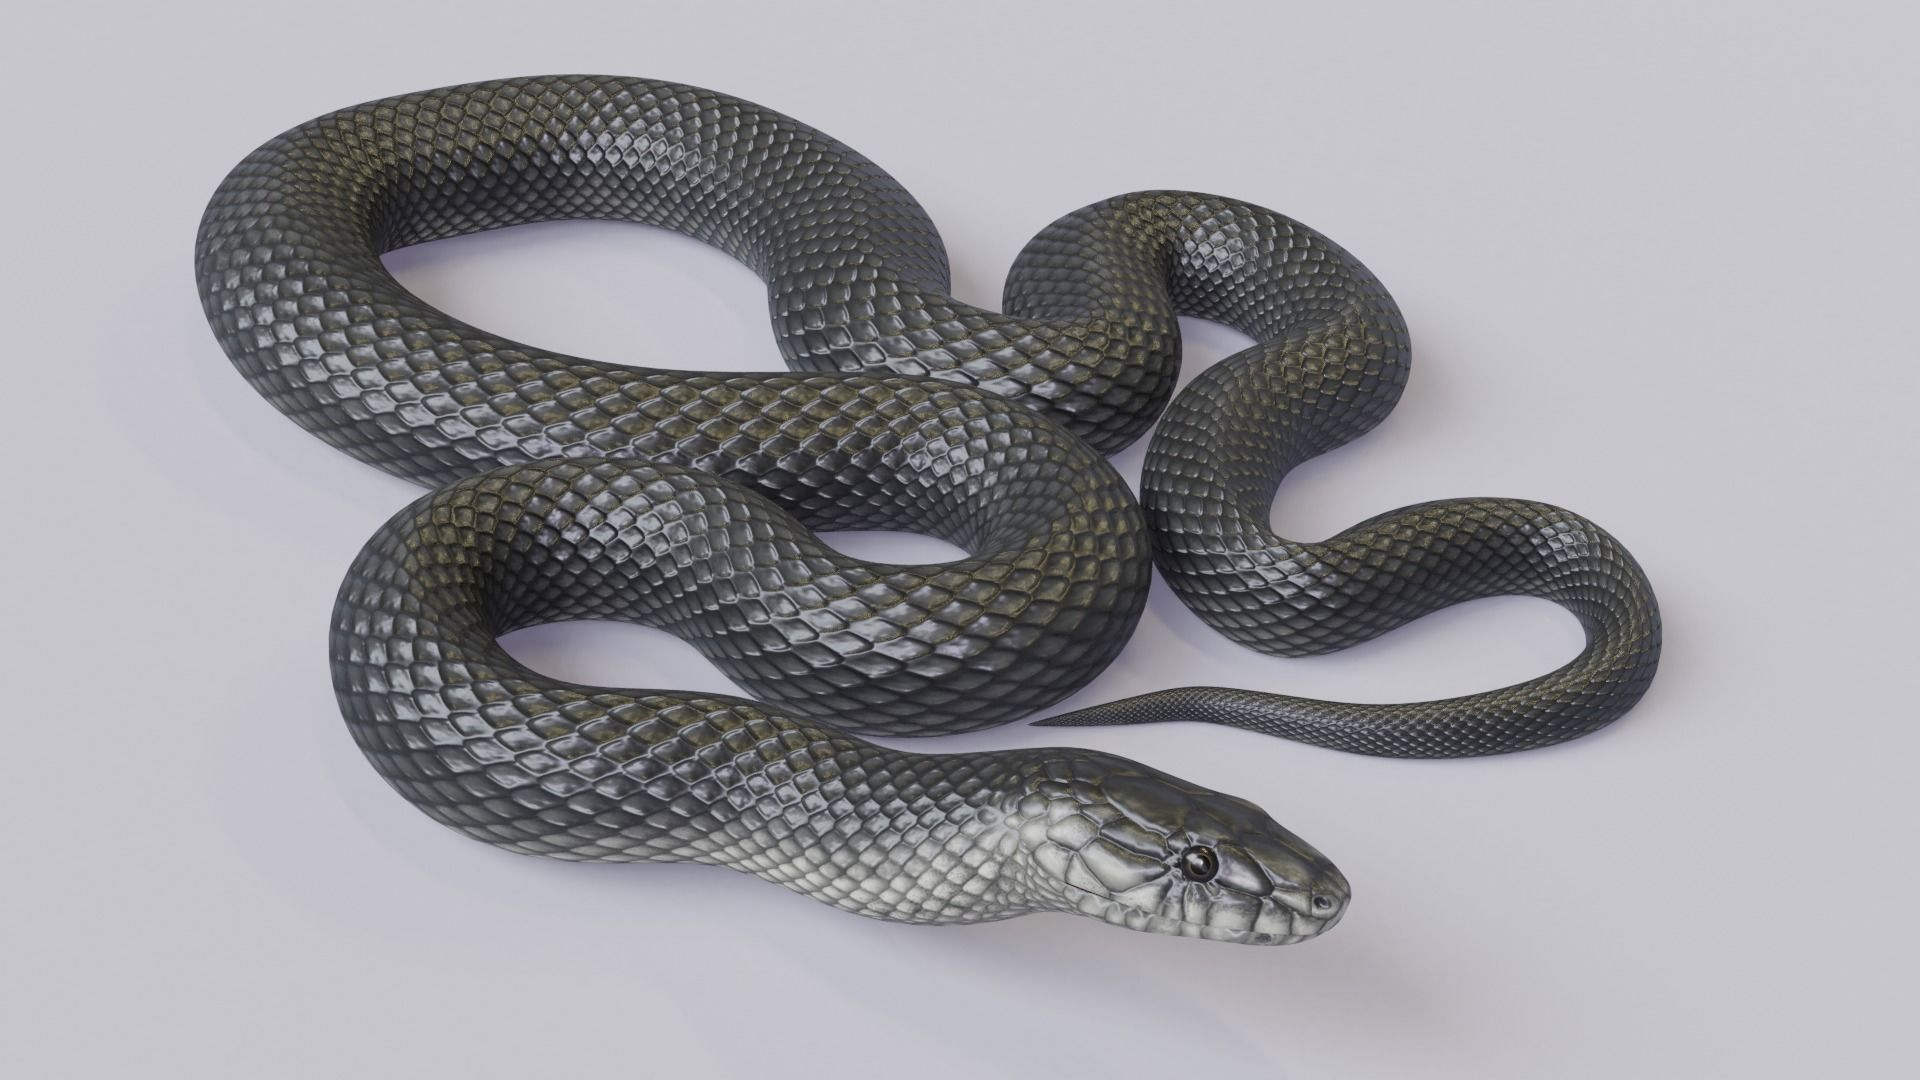 Animated Black Mamba